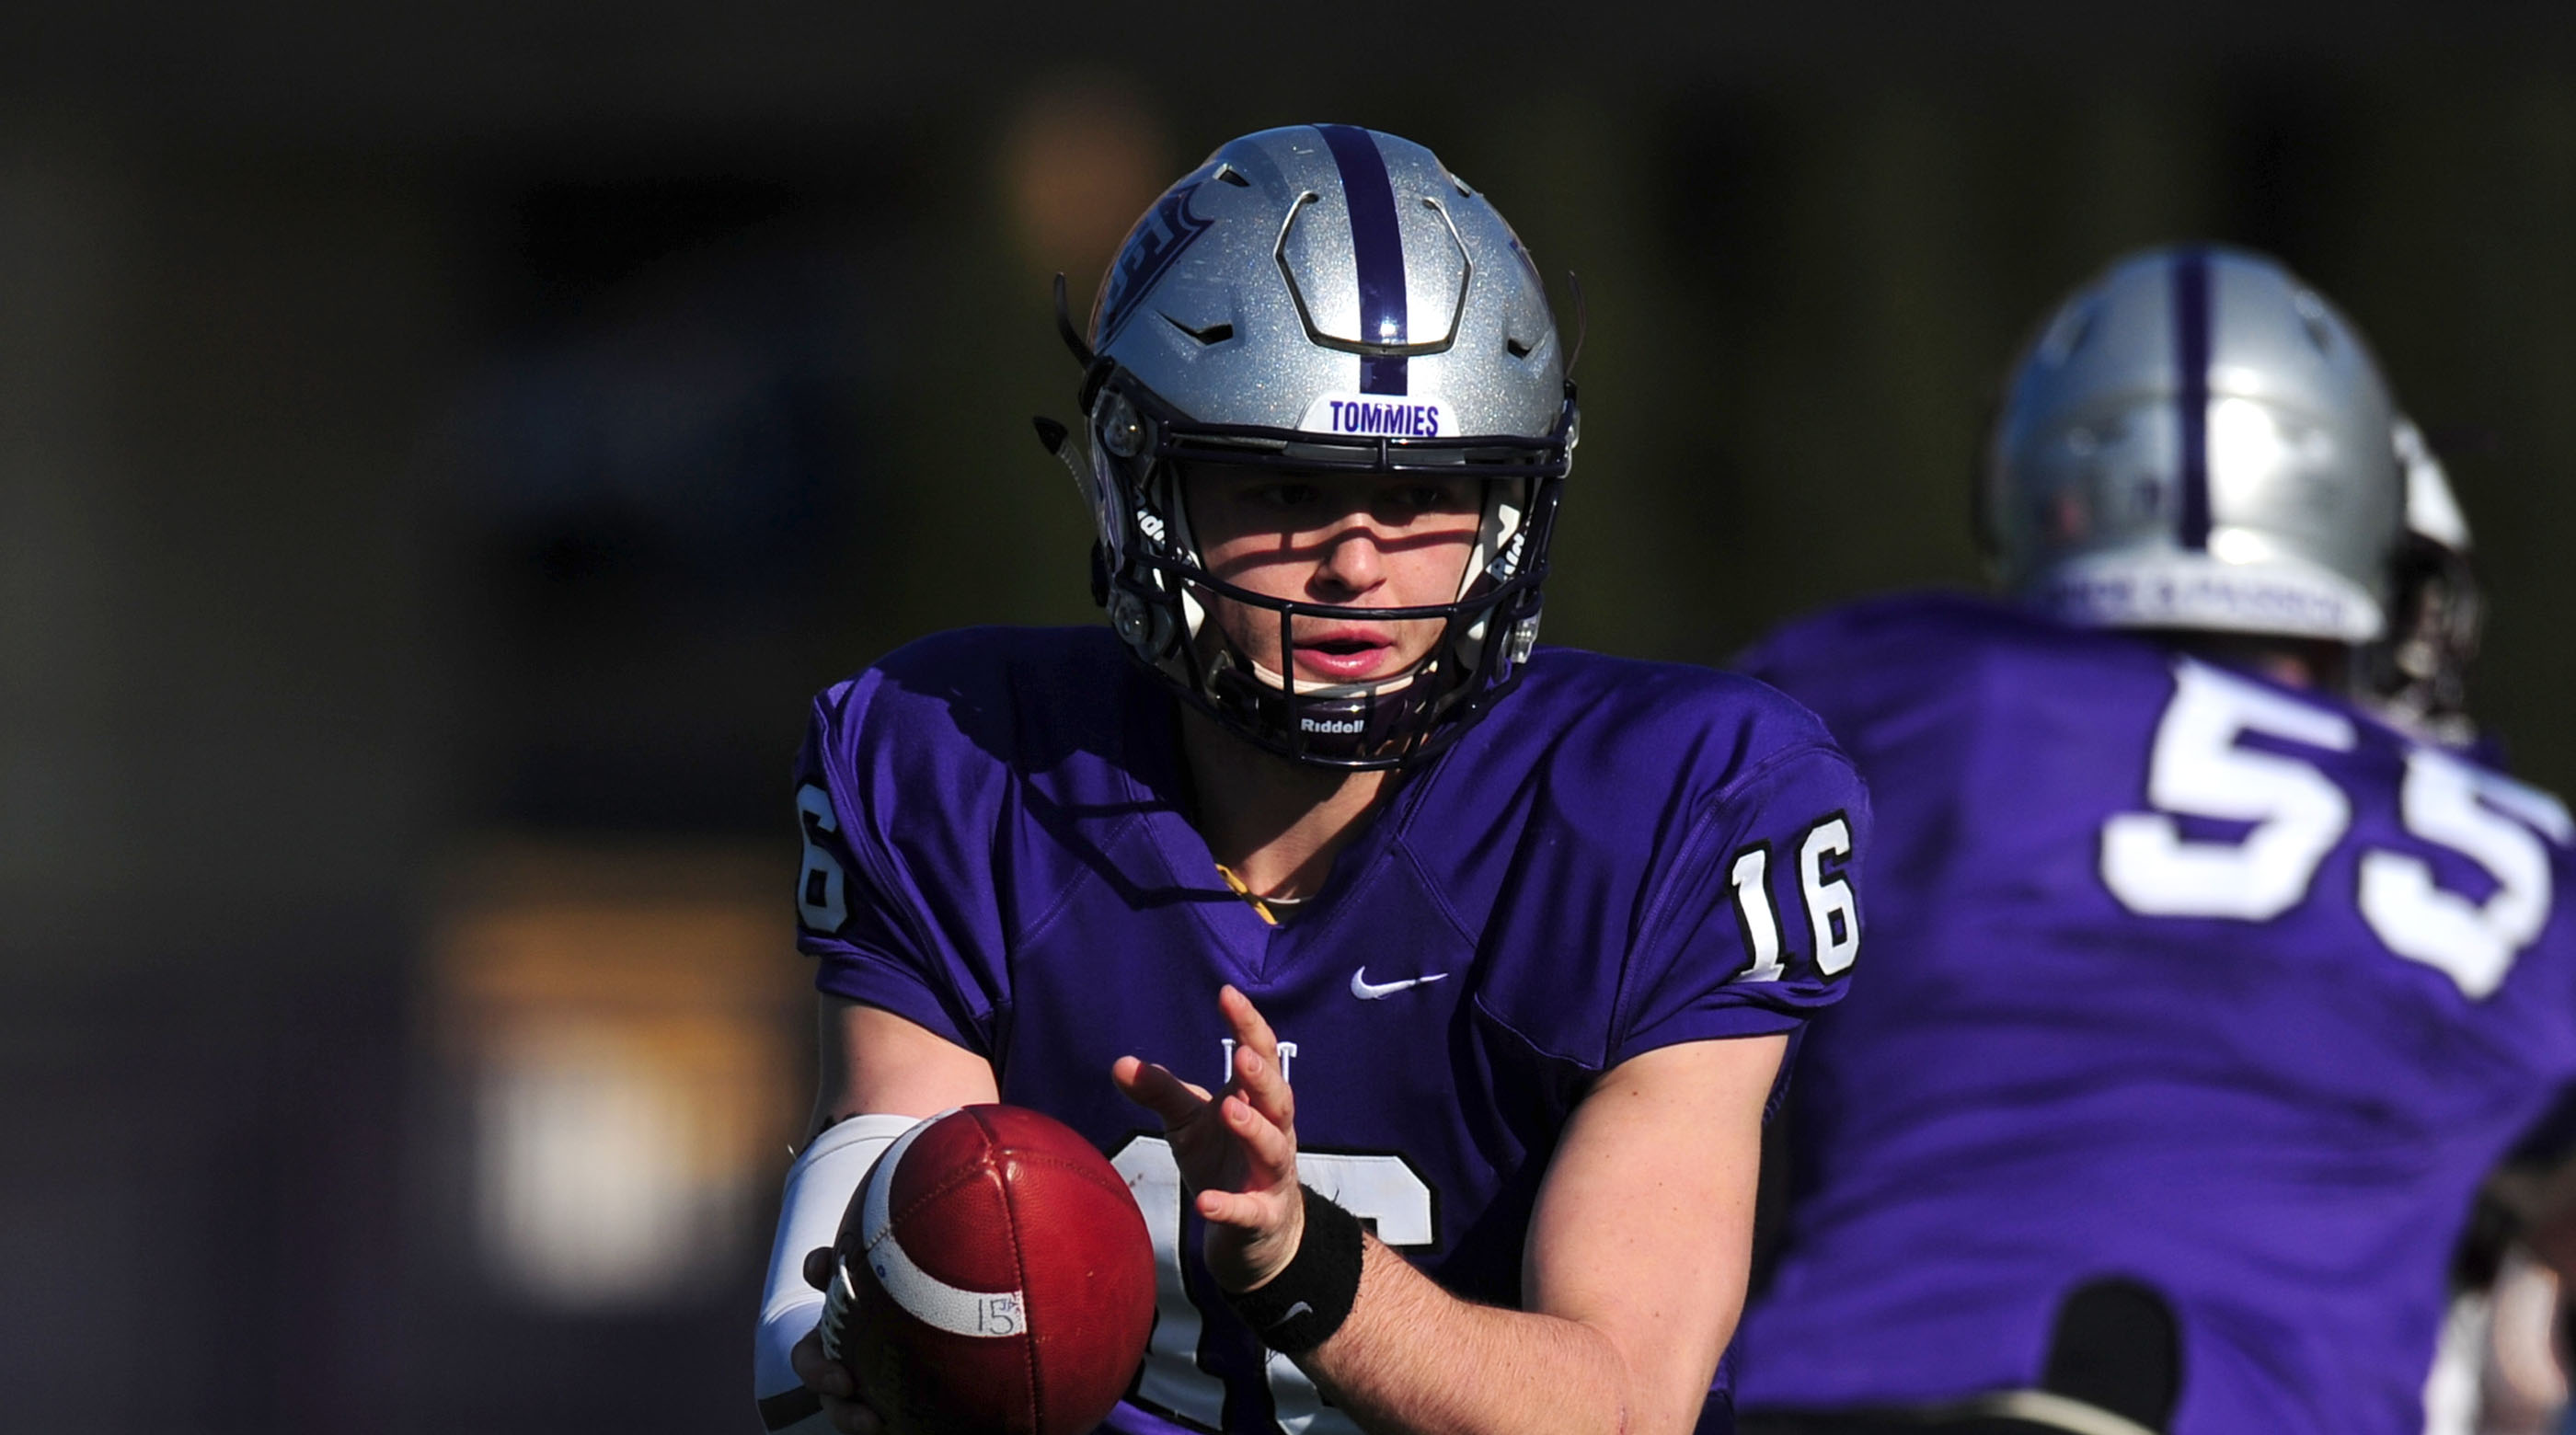 St. Thomas kicked out of MIAC for being too good